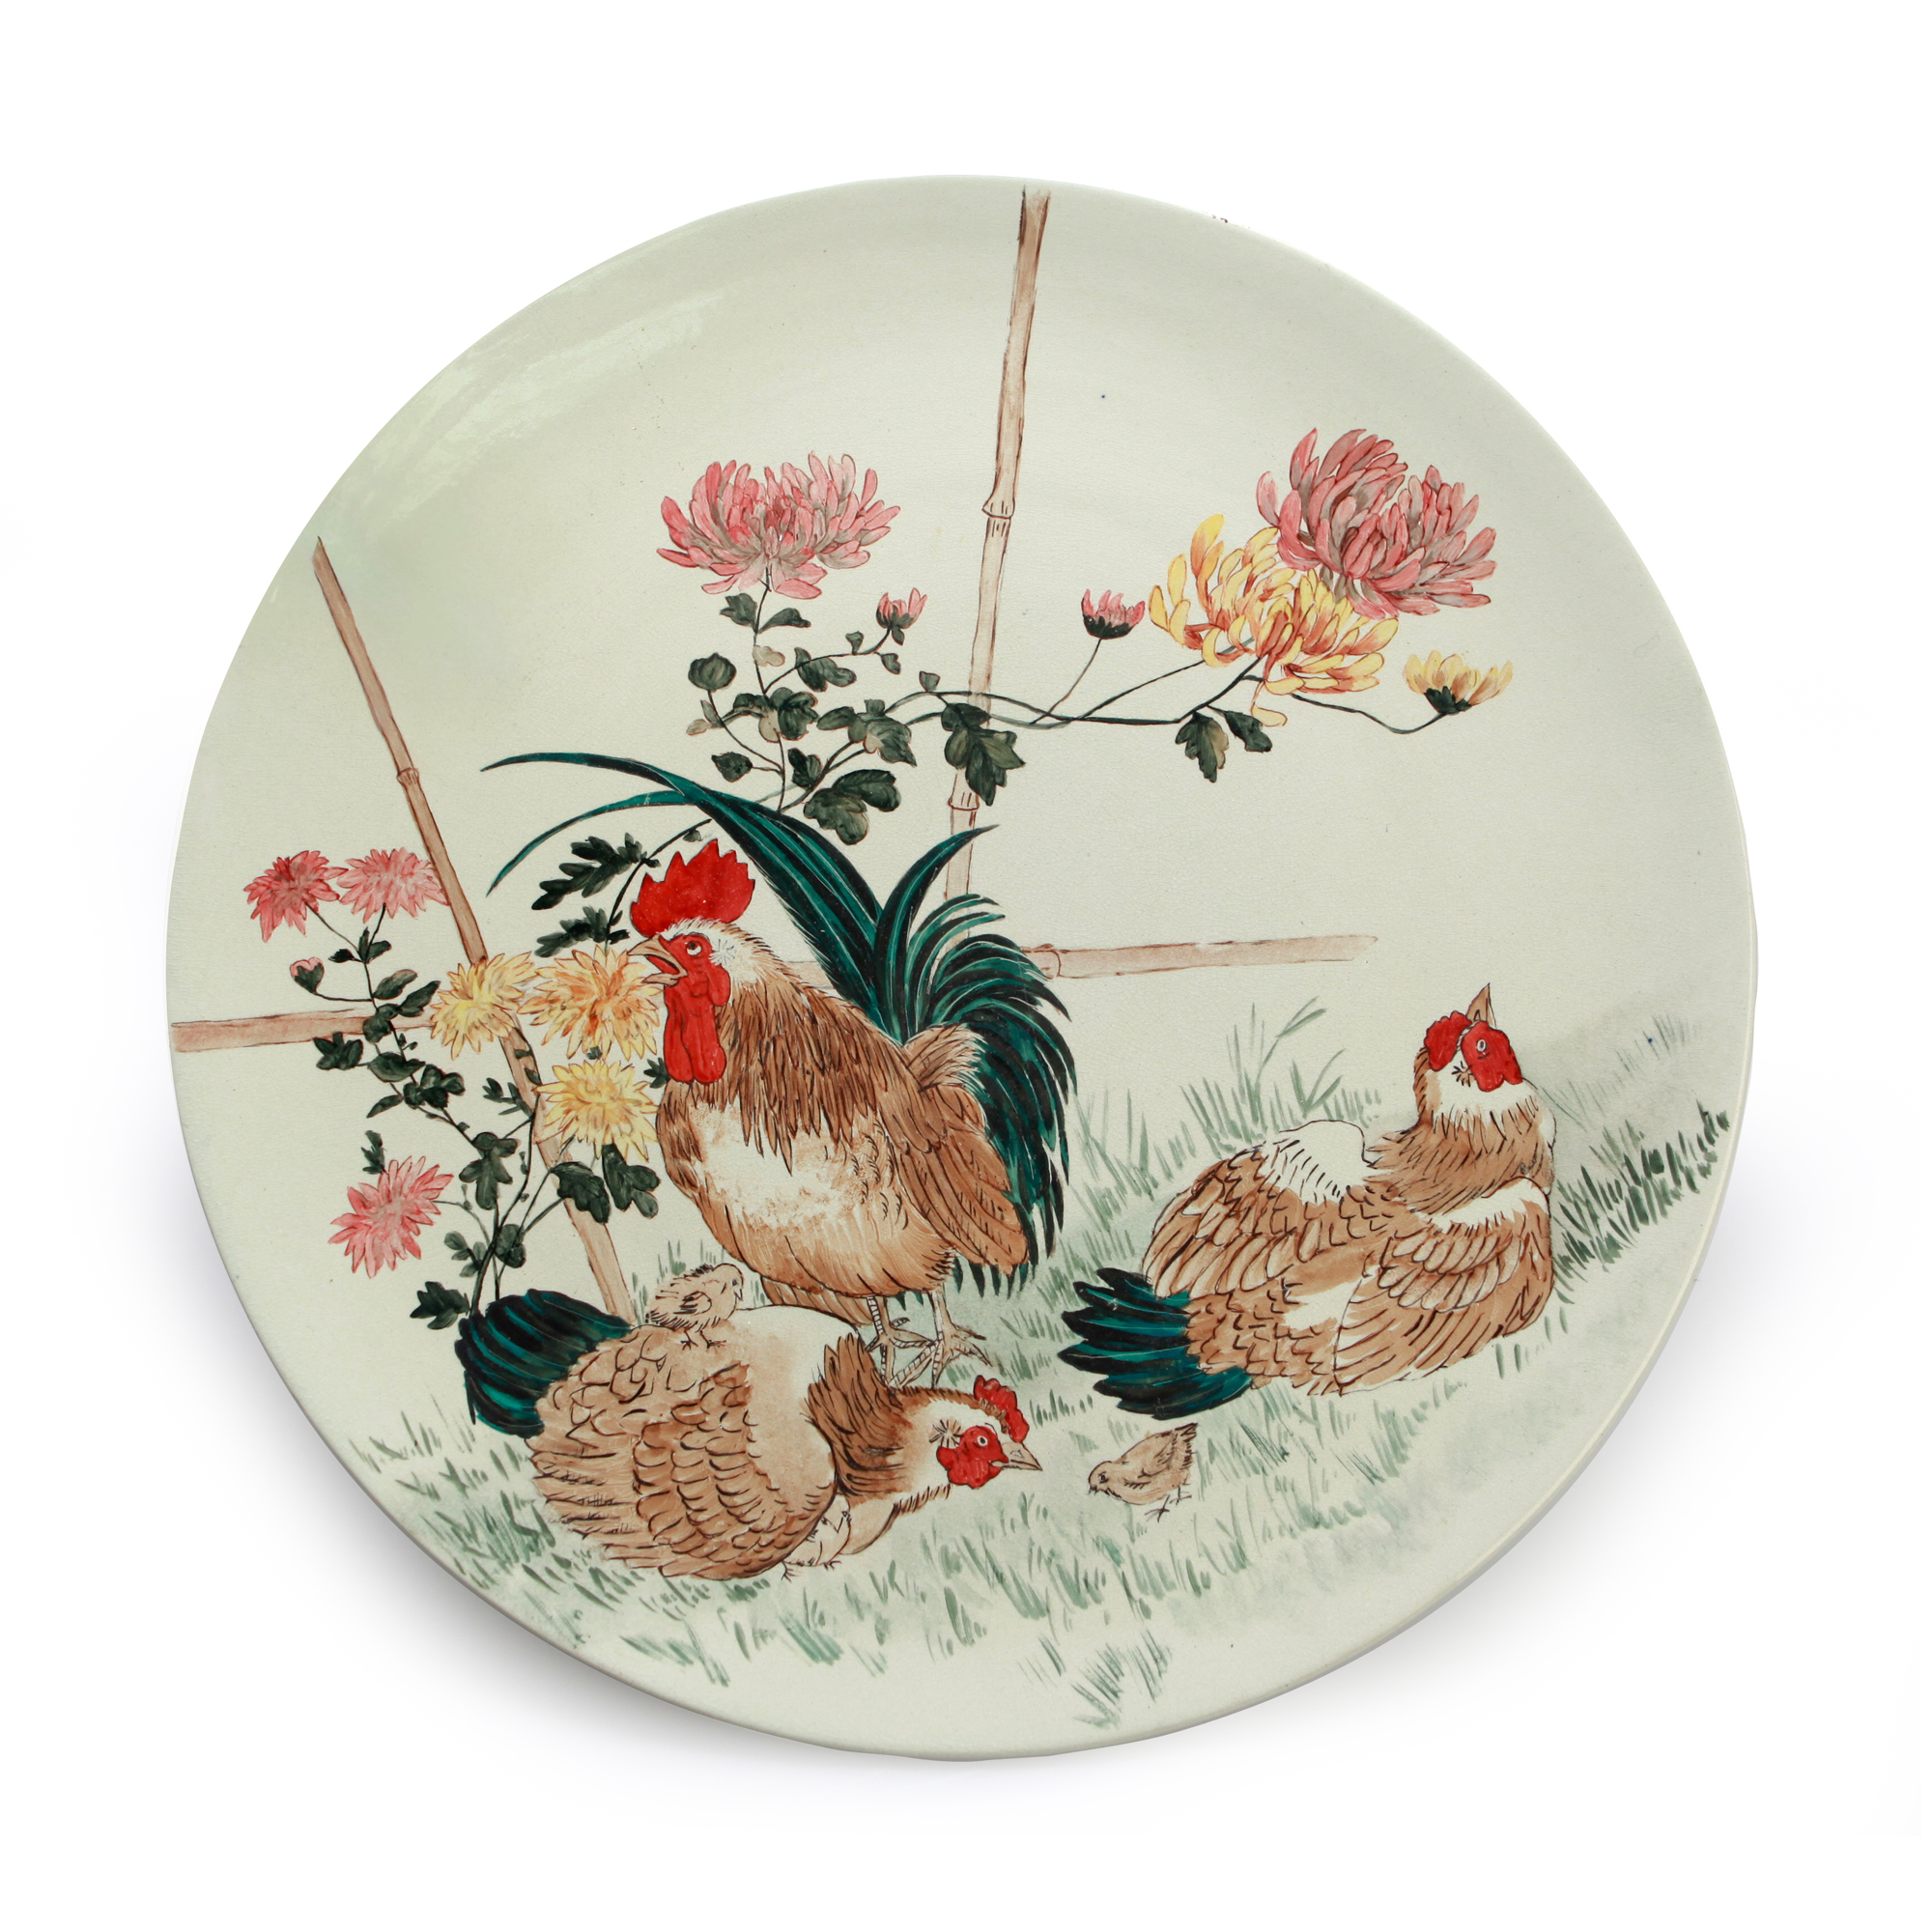 Doulton Burslem Hand Painted Plaque of Rooster and Chickens - Royal Doulton